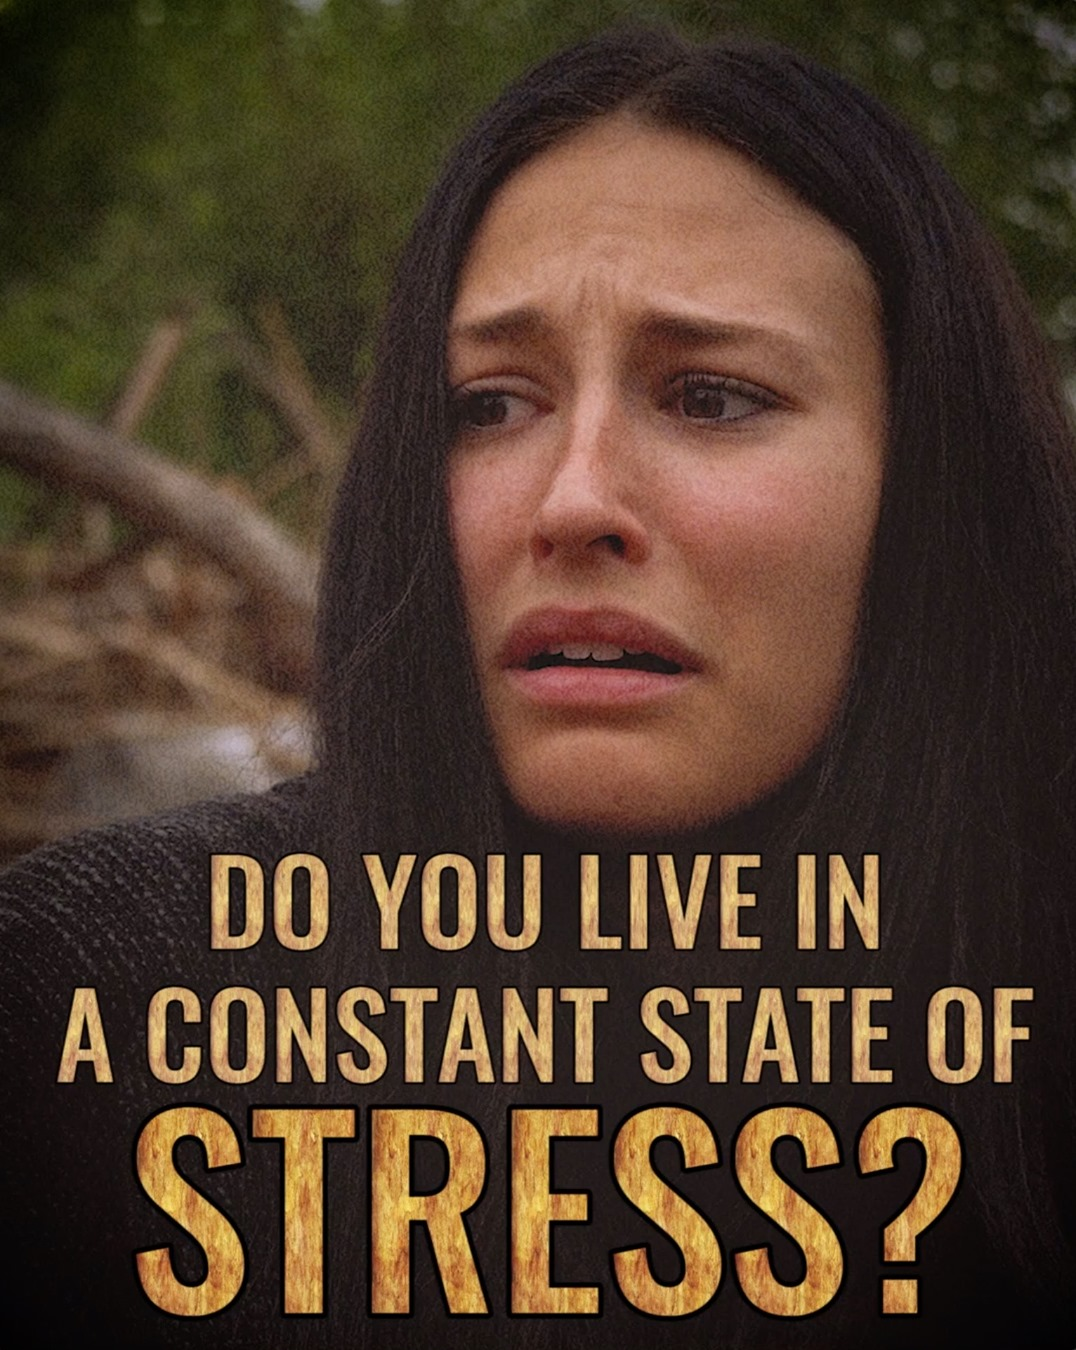 Do you live in a constant state of stress?